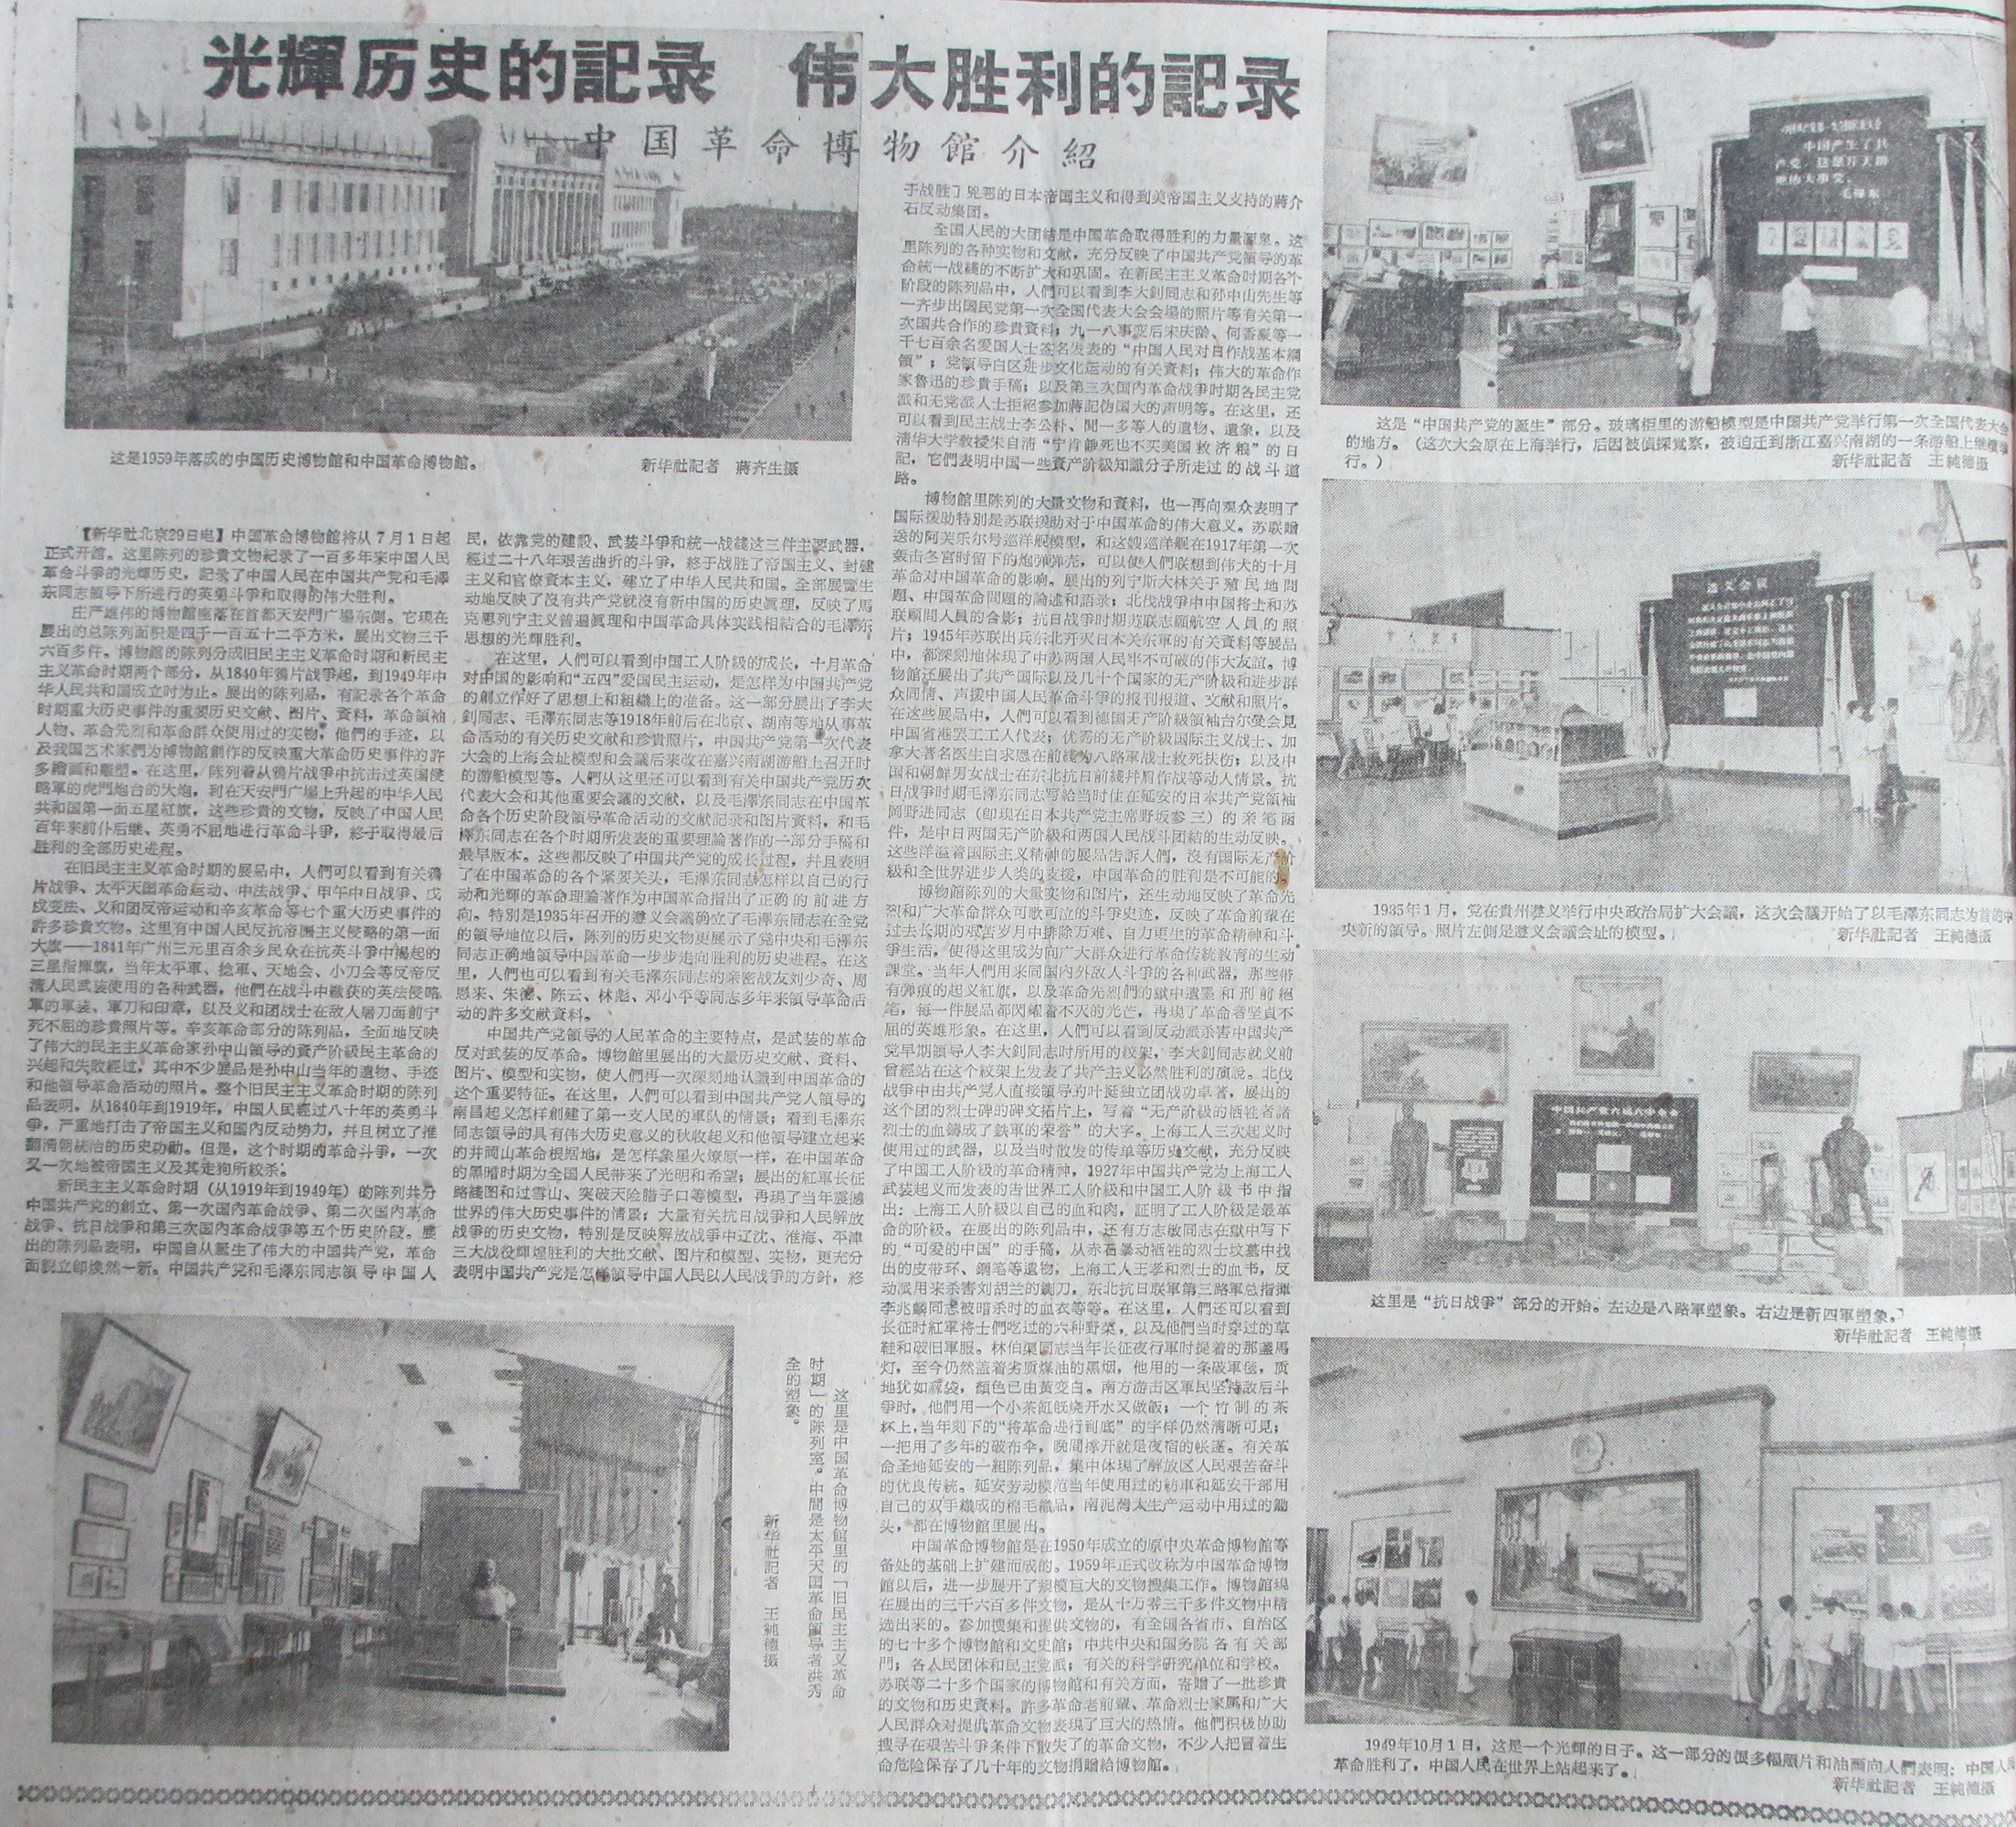 A newspaper report about the Revolution Museum. Source: Xinhua Ribao, 30 June 1961.